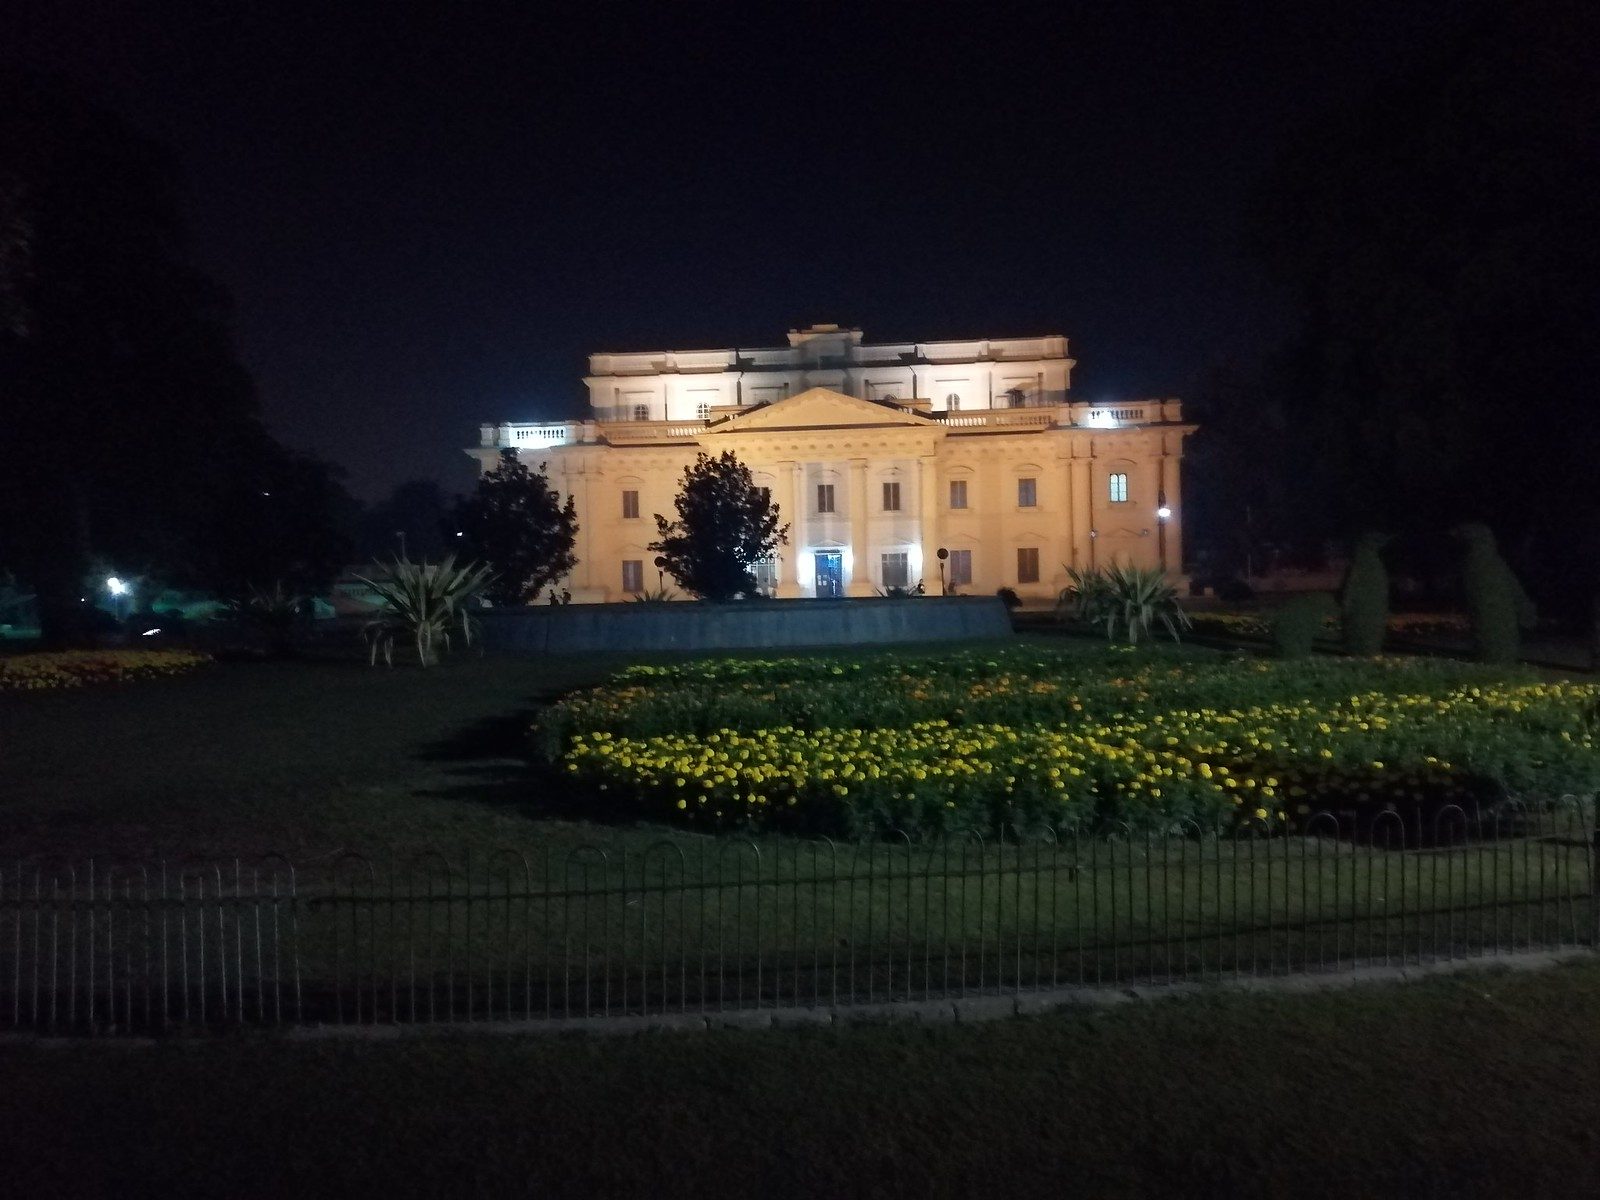 Picture at night with auto mode on Huawei Y9 2019